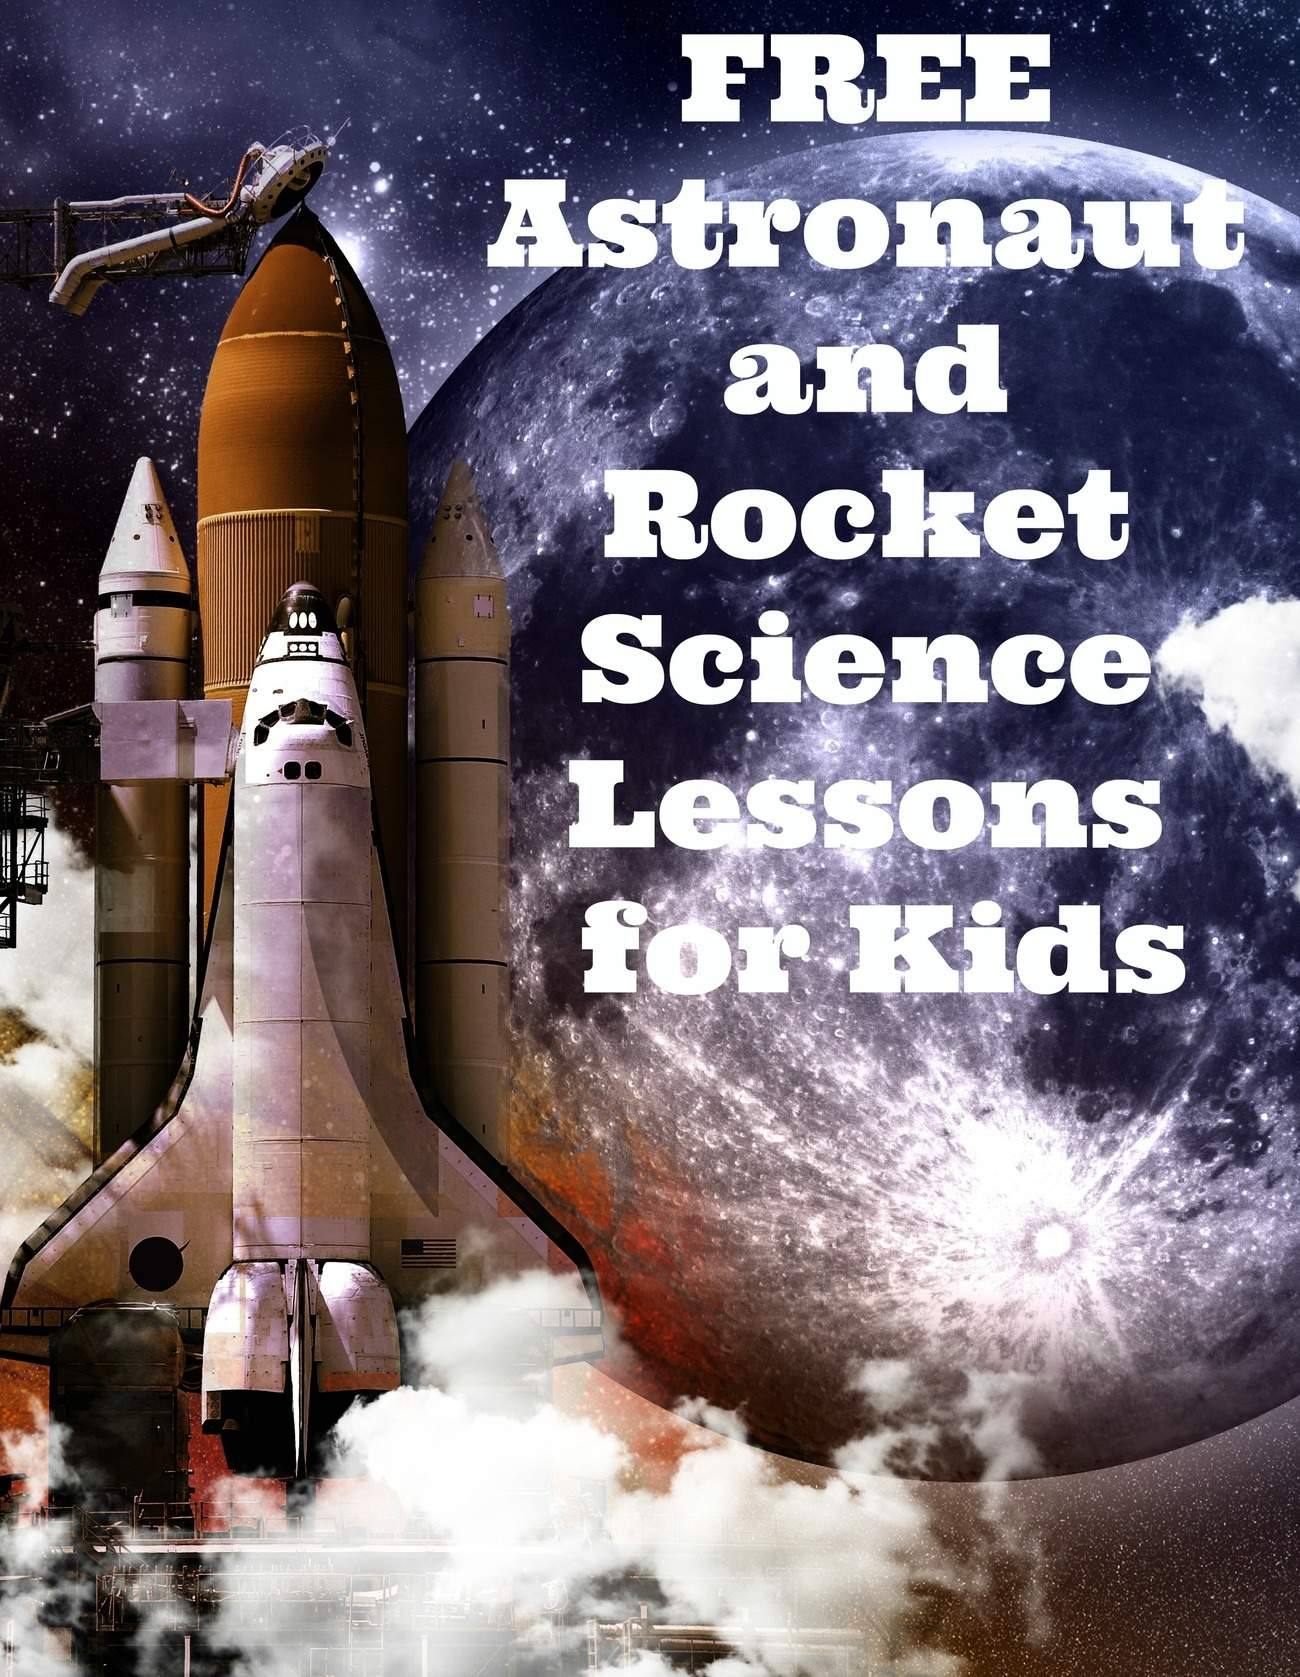 Free Astronaut and Rocket Ship Lessons